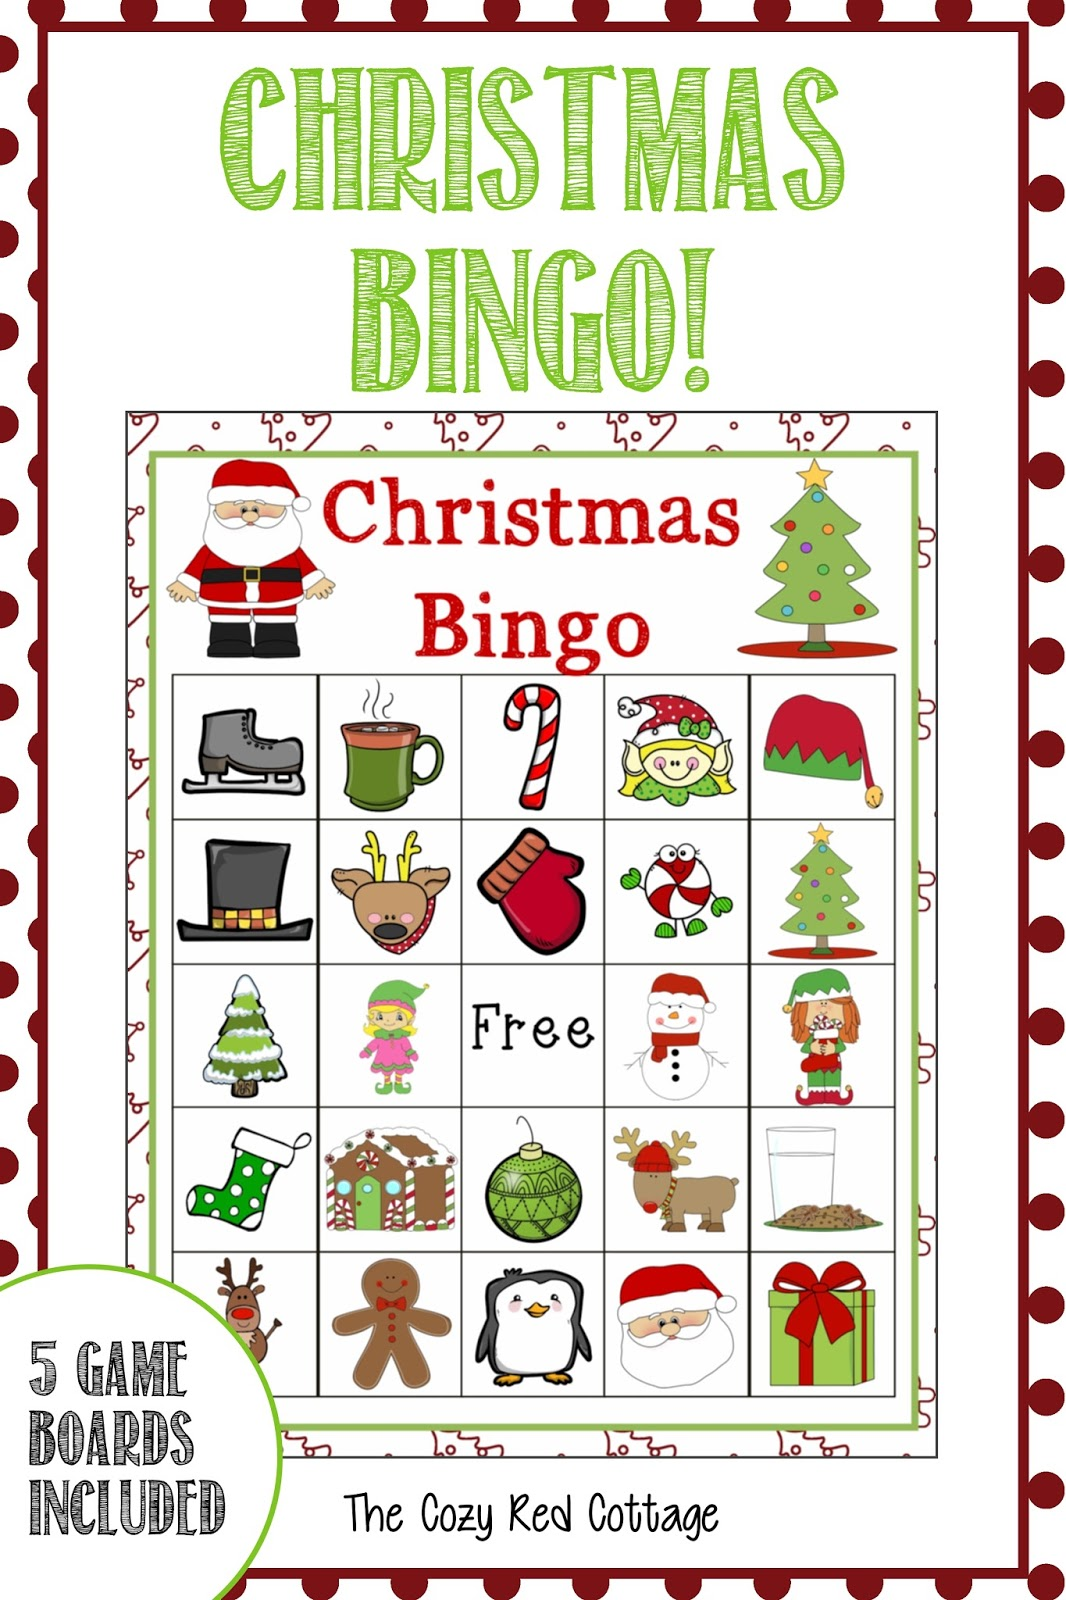 bingo is such a classic game all kids and adults love i wanted something fun to do with my cute kids one night and this is the perfect addition to any - Christmas Bingo For Kids